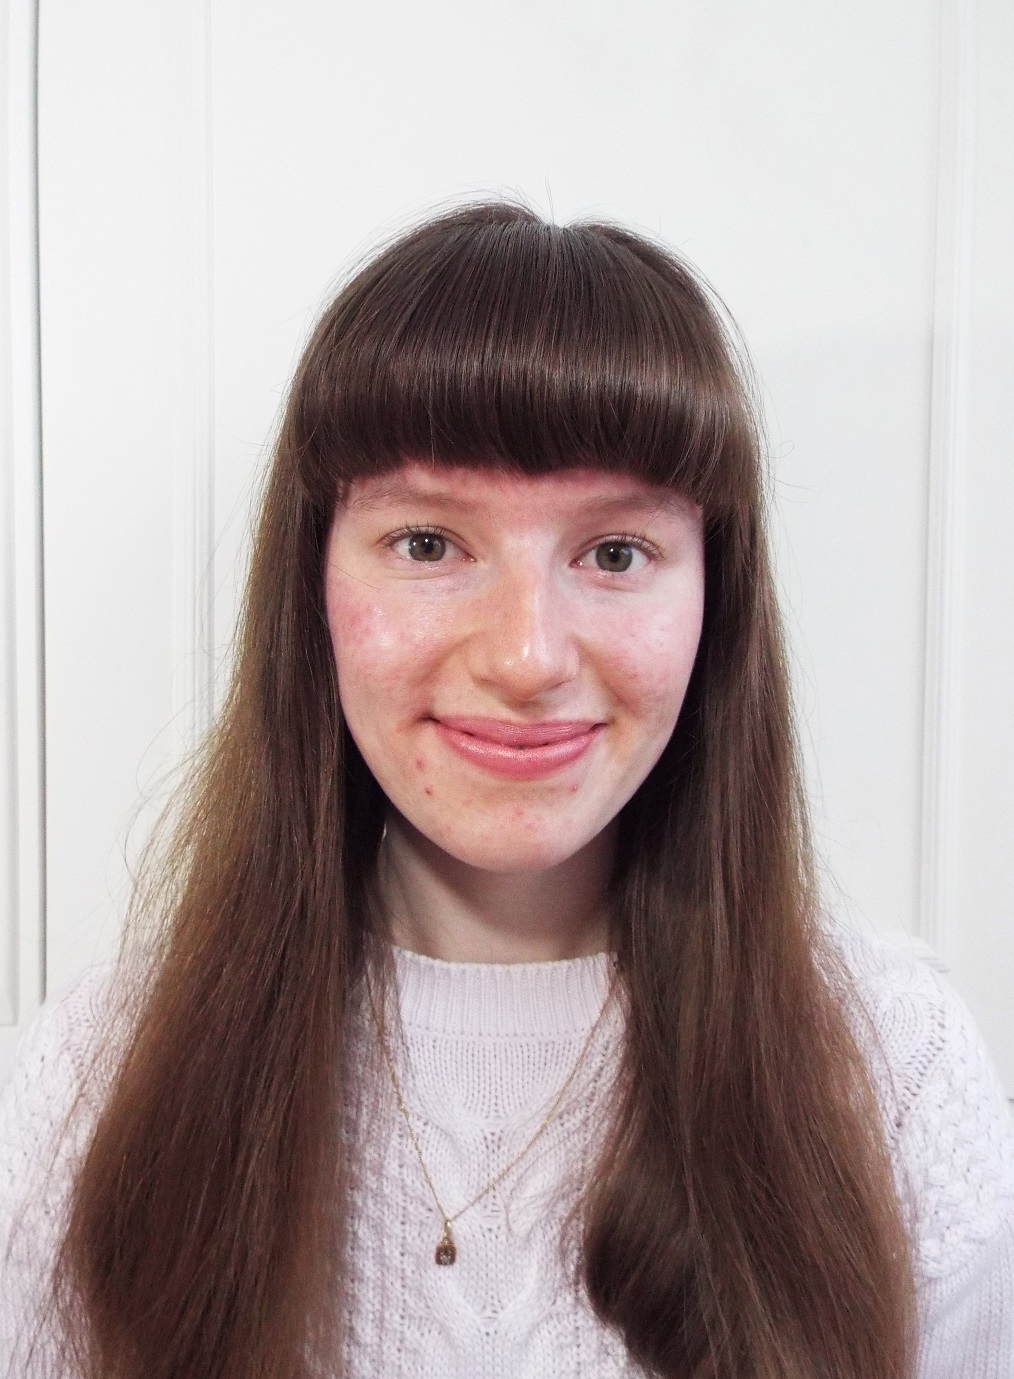 Ellie - blogger of Ellie Bows & Sparkles - with no makeup, full fringe and brown hair, curled lashes and pink lips, wearing a lilac jumper and her Nan's little gold necklace